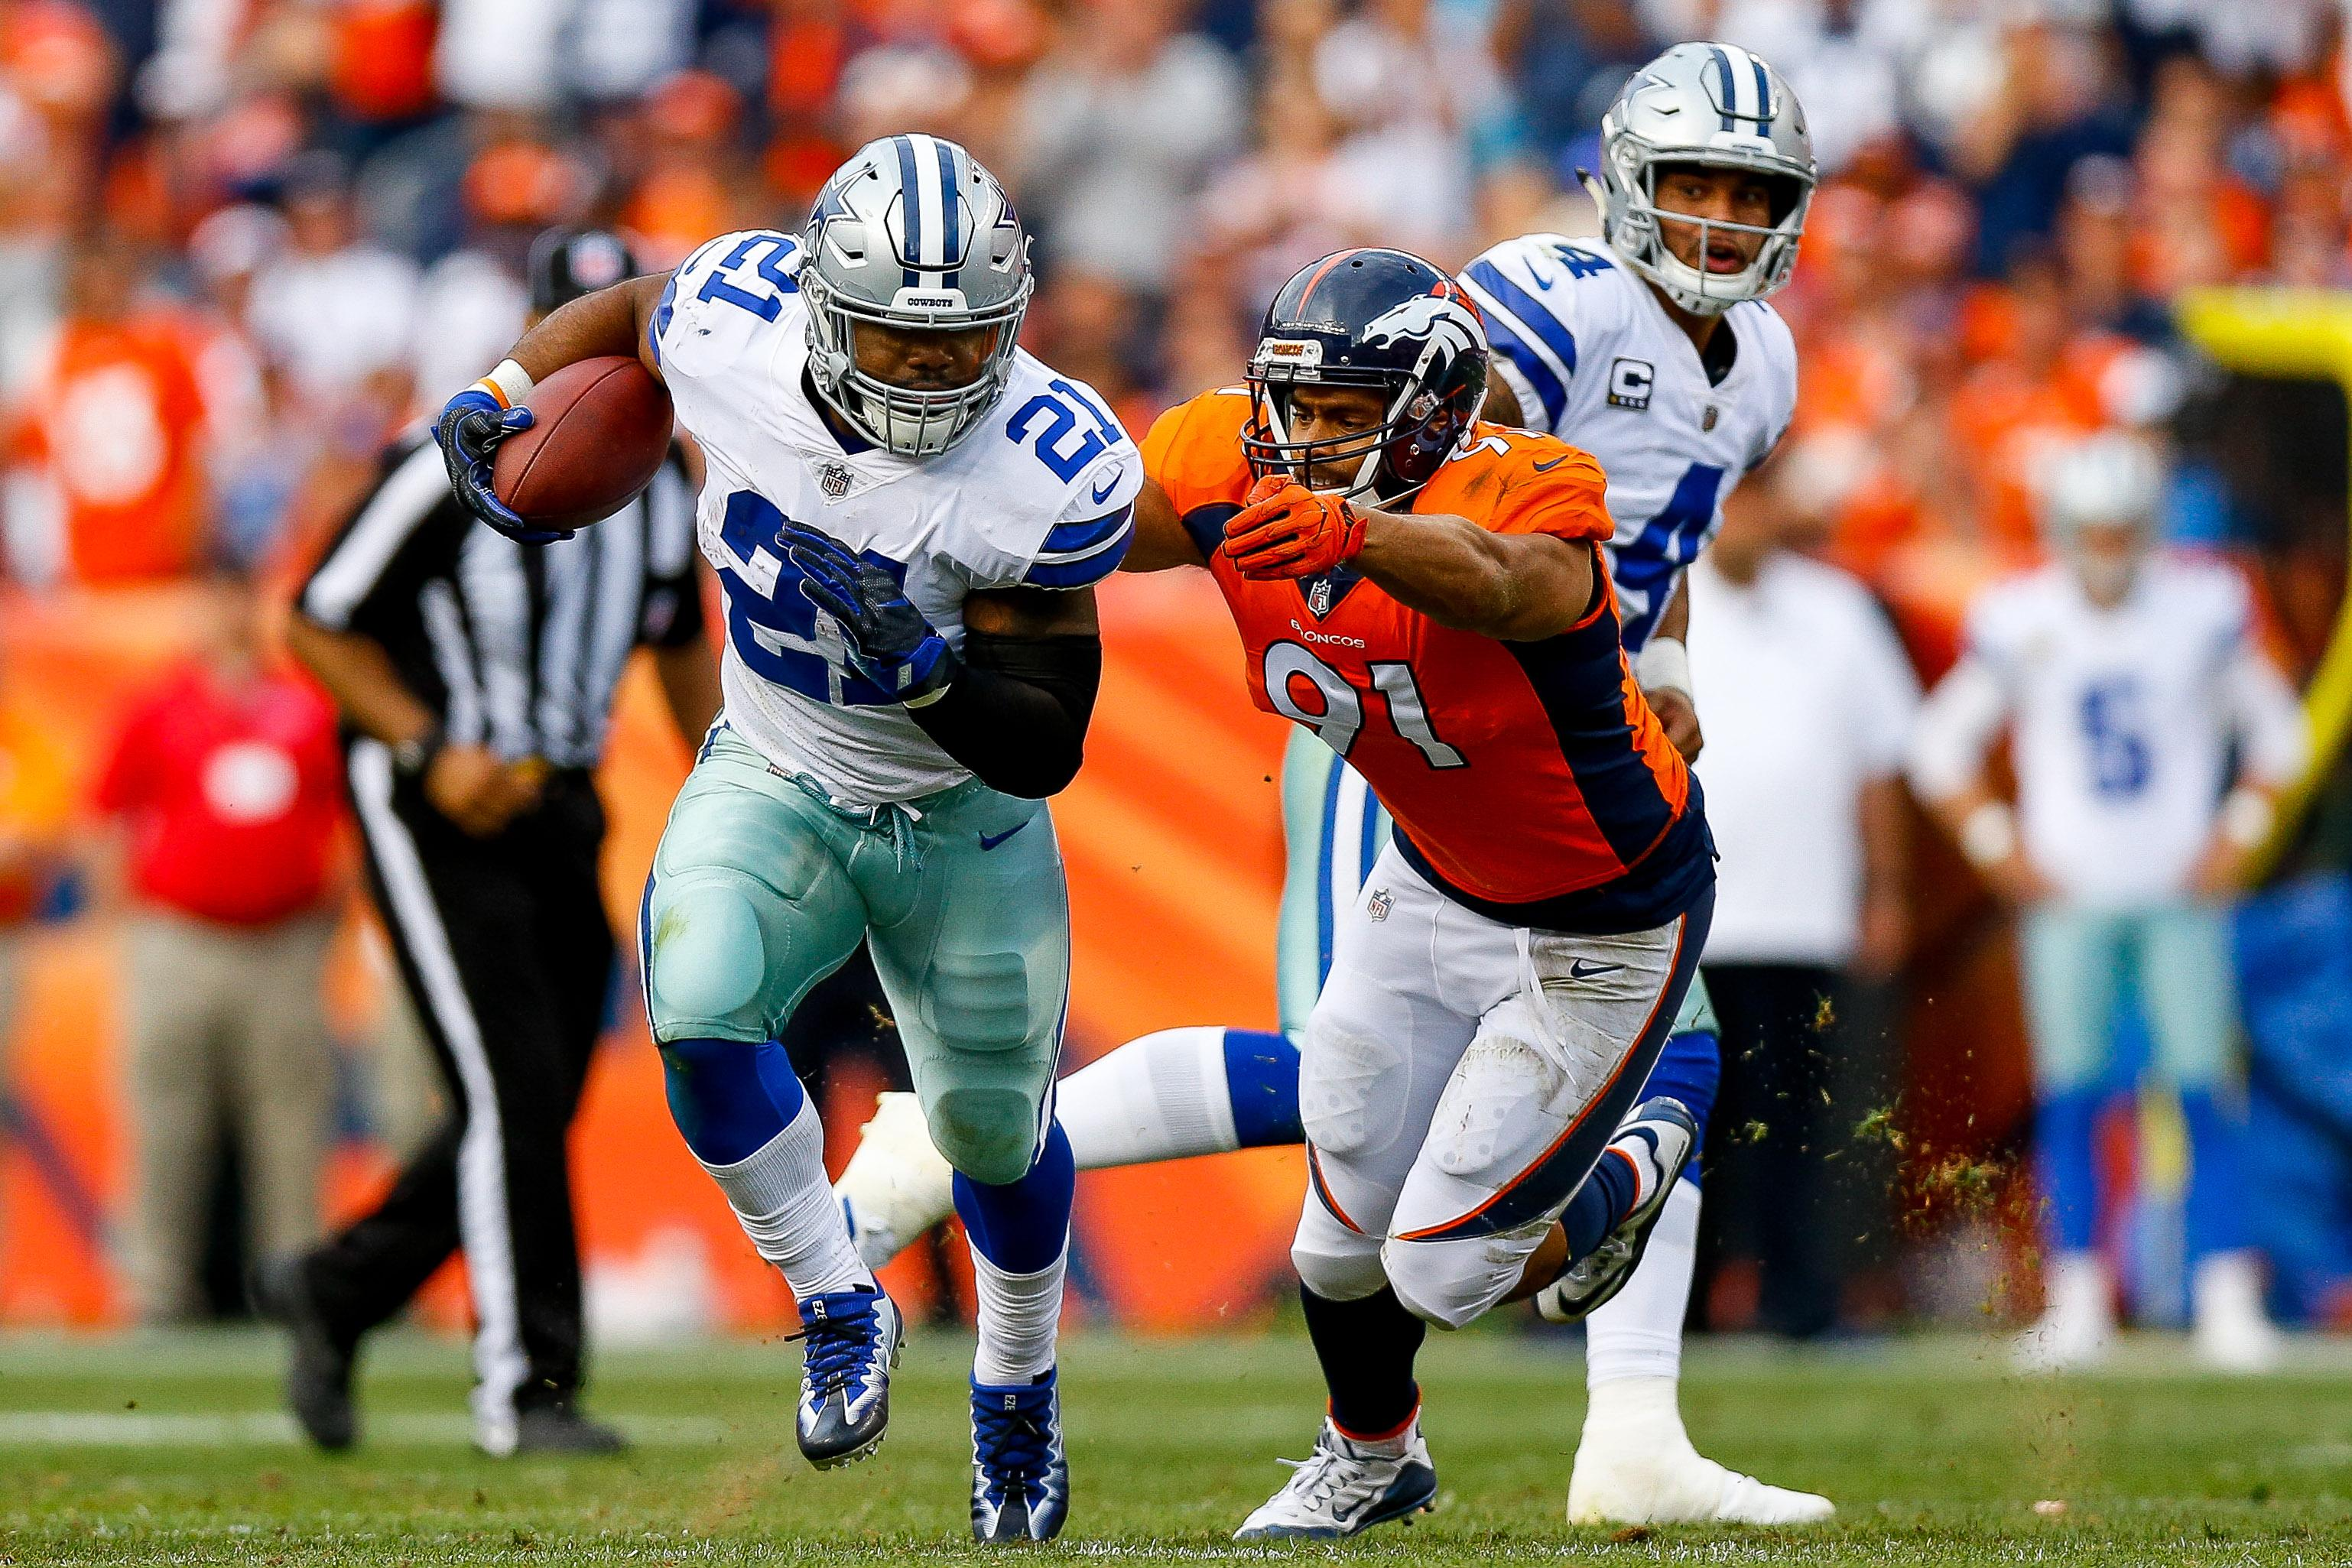 Cowboys RB Ezekiel Elliott can't defend lack of effort against Broncos